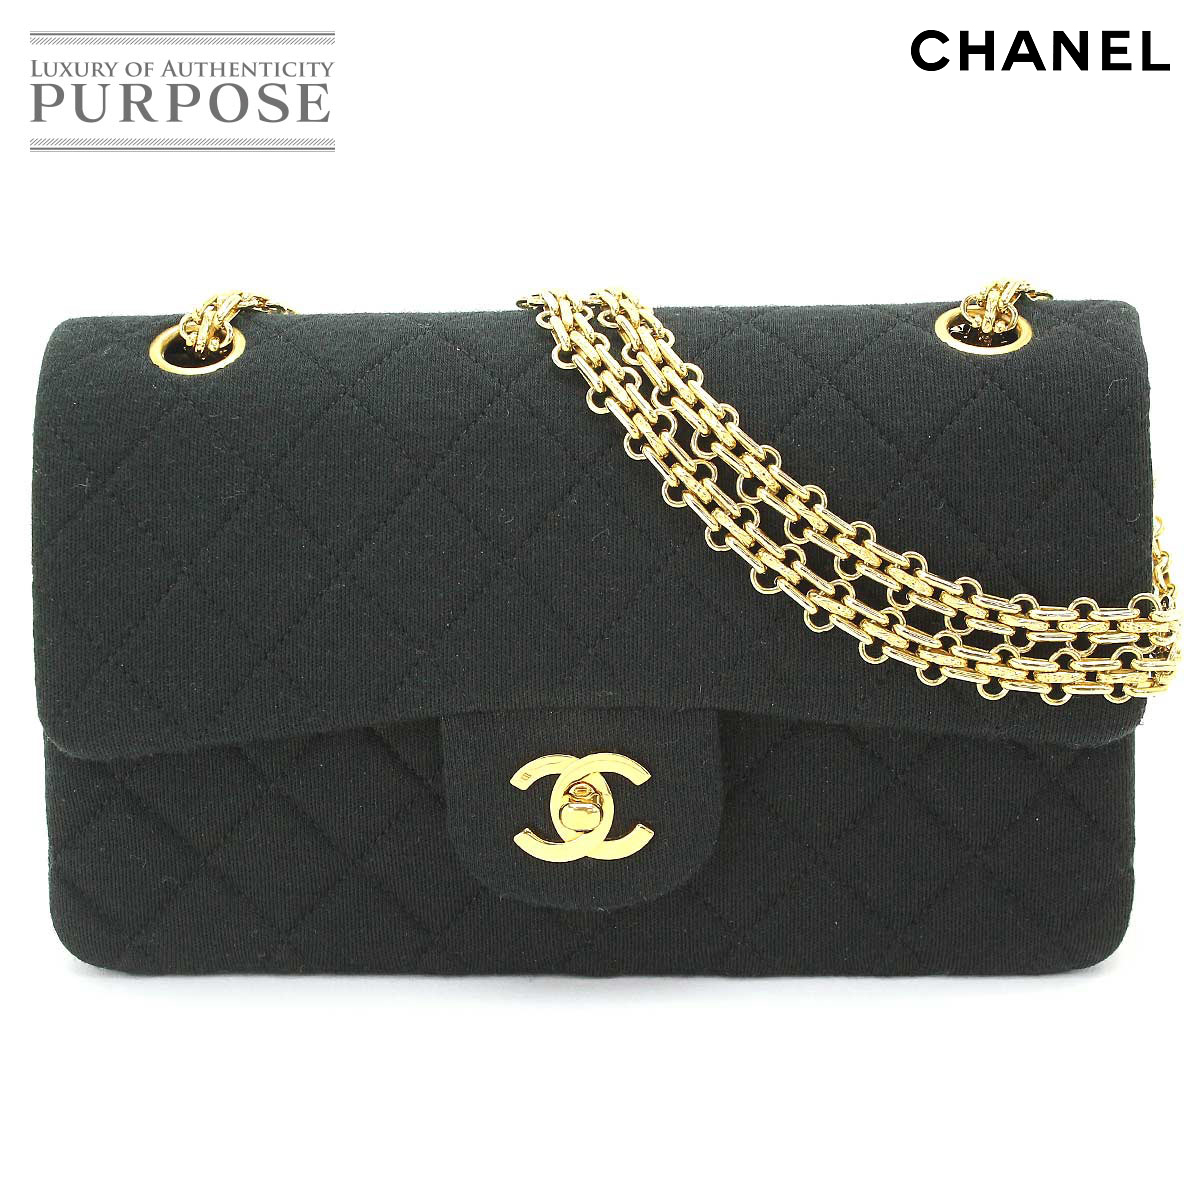 0a2d693ea676 Chanel CHANEL jersey matelasse 23 classic flap chain shoulder bag black  here mark A01113  used  brand